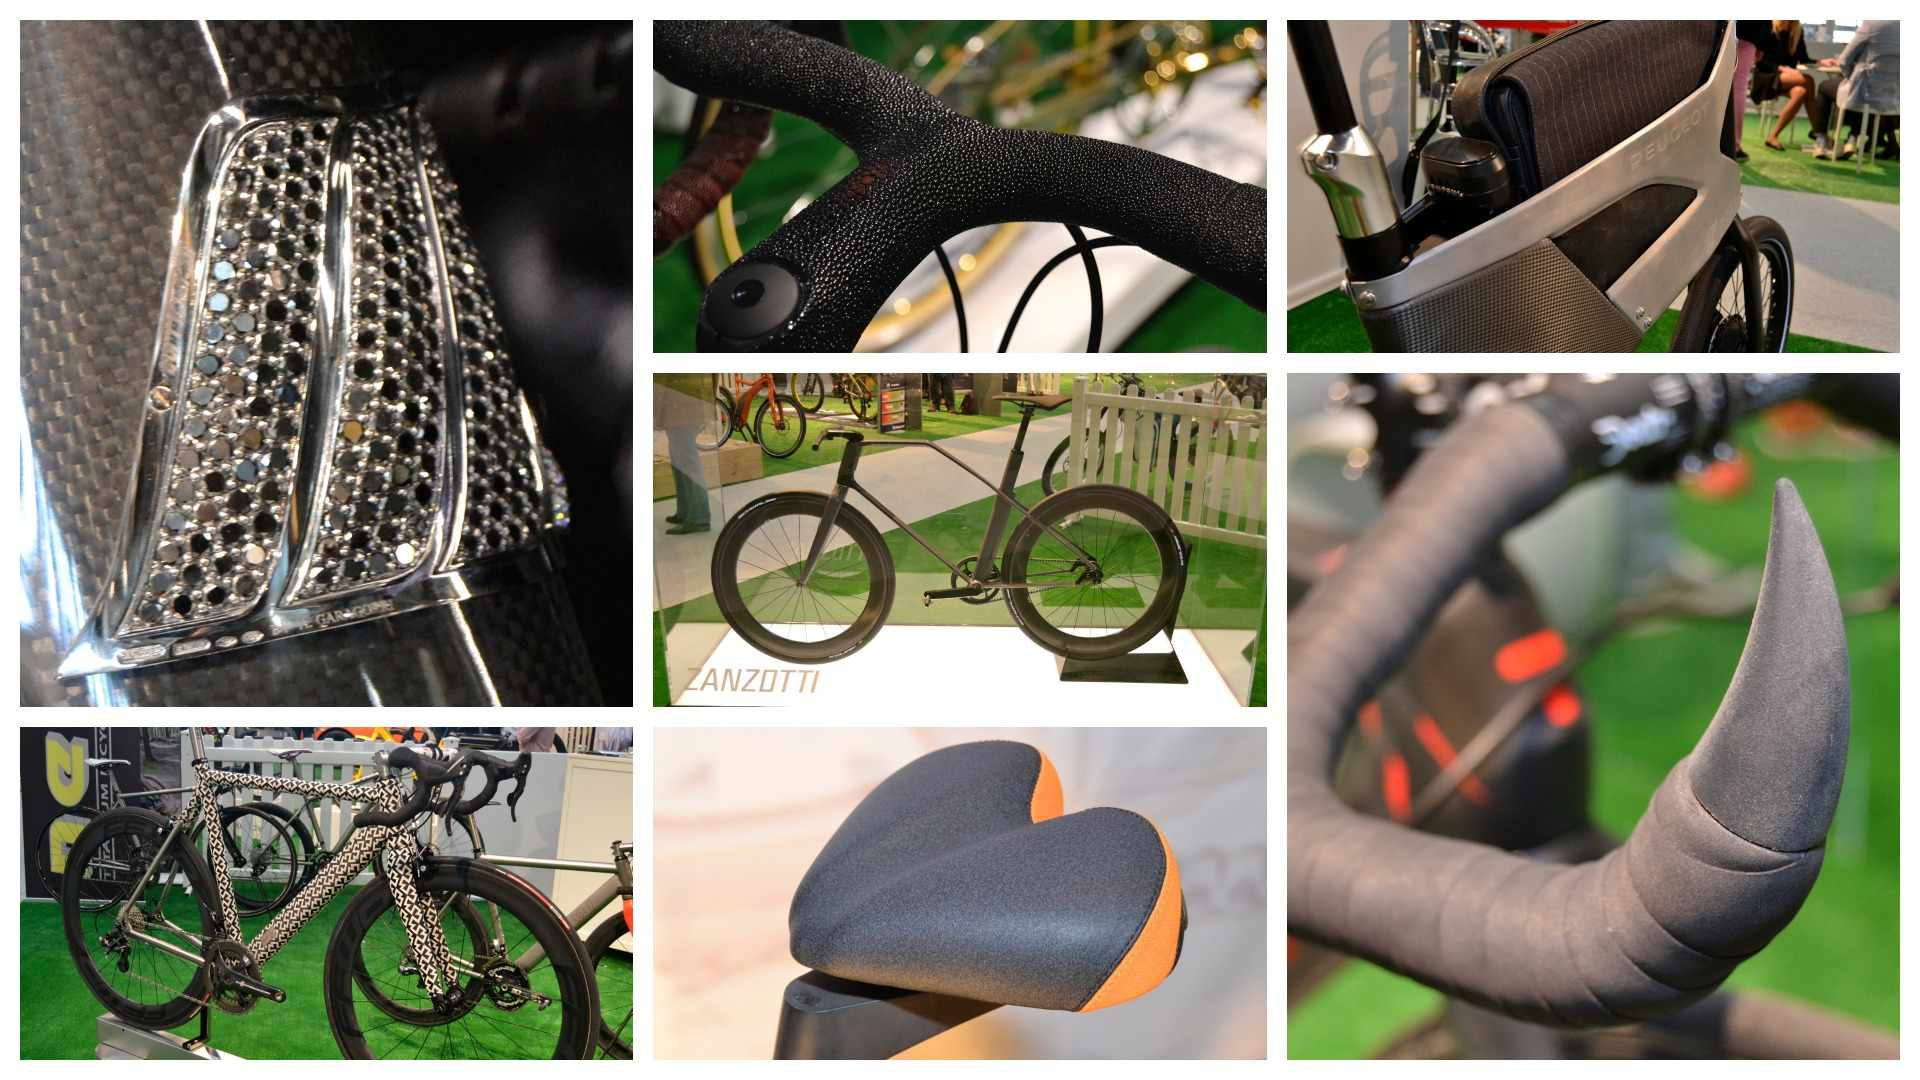 LikeBike 2015 offered a wealth of odd bike kit for cash-rich cyclists